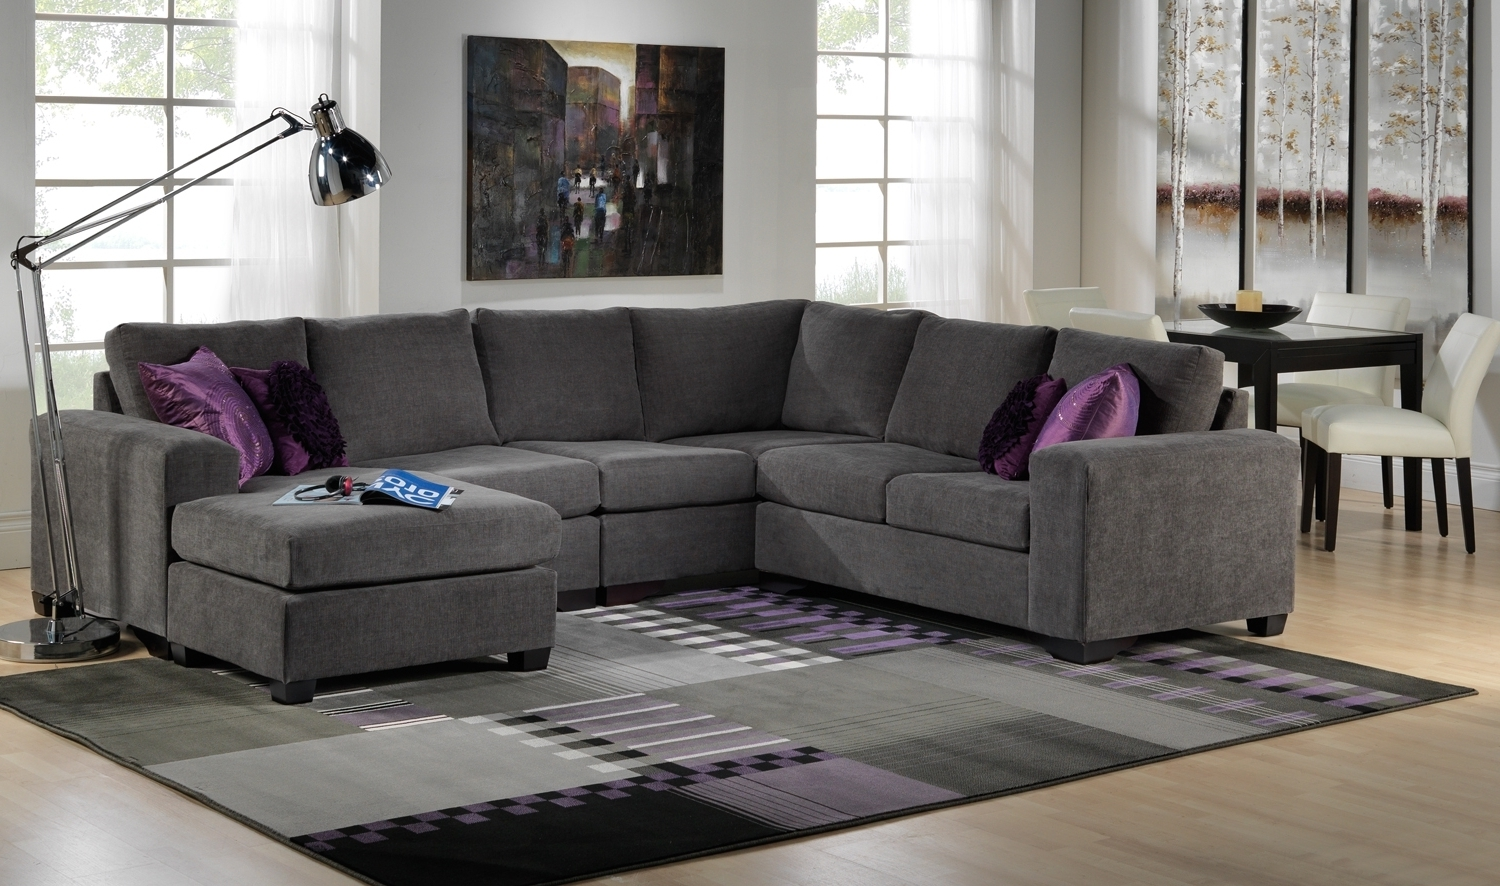 Leons Sectional Sofas Intended For Newest Leons Sofa Bed Sectional (View 19 of 20)